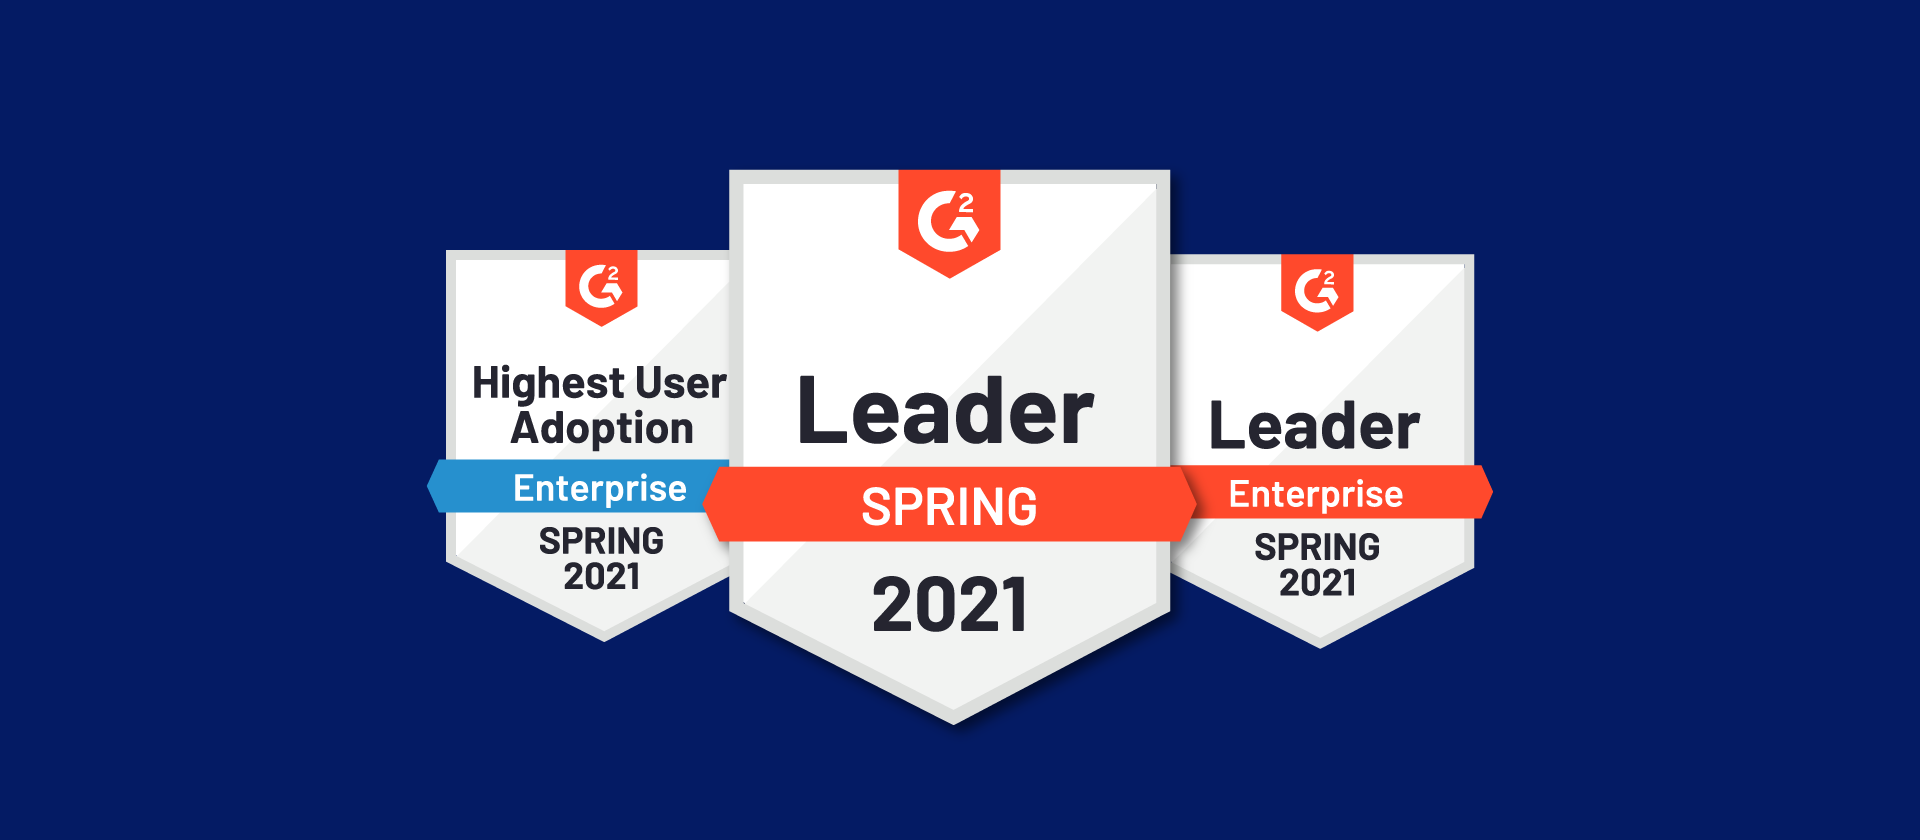 Three G2 leader badges for highest user adoption in Spring 2021, leader for spring, and leader enterprise for spring